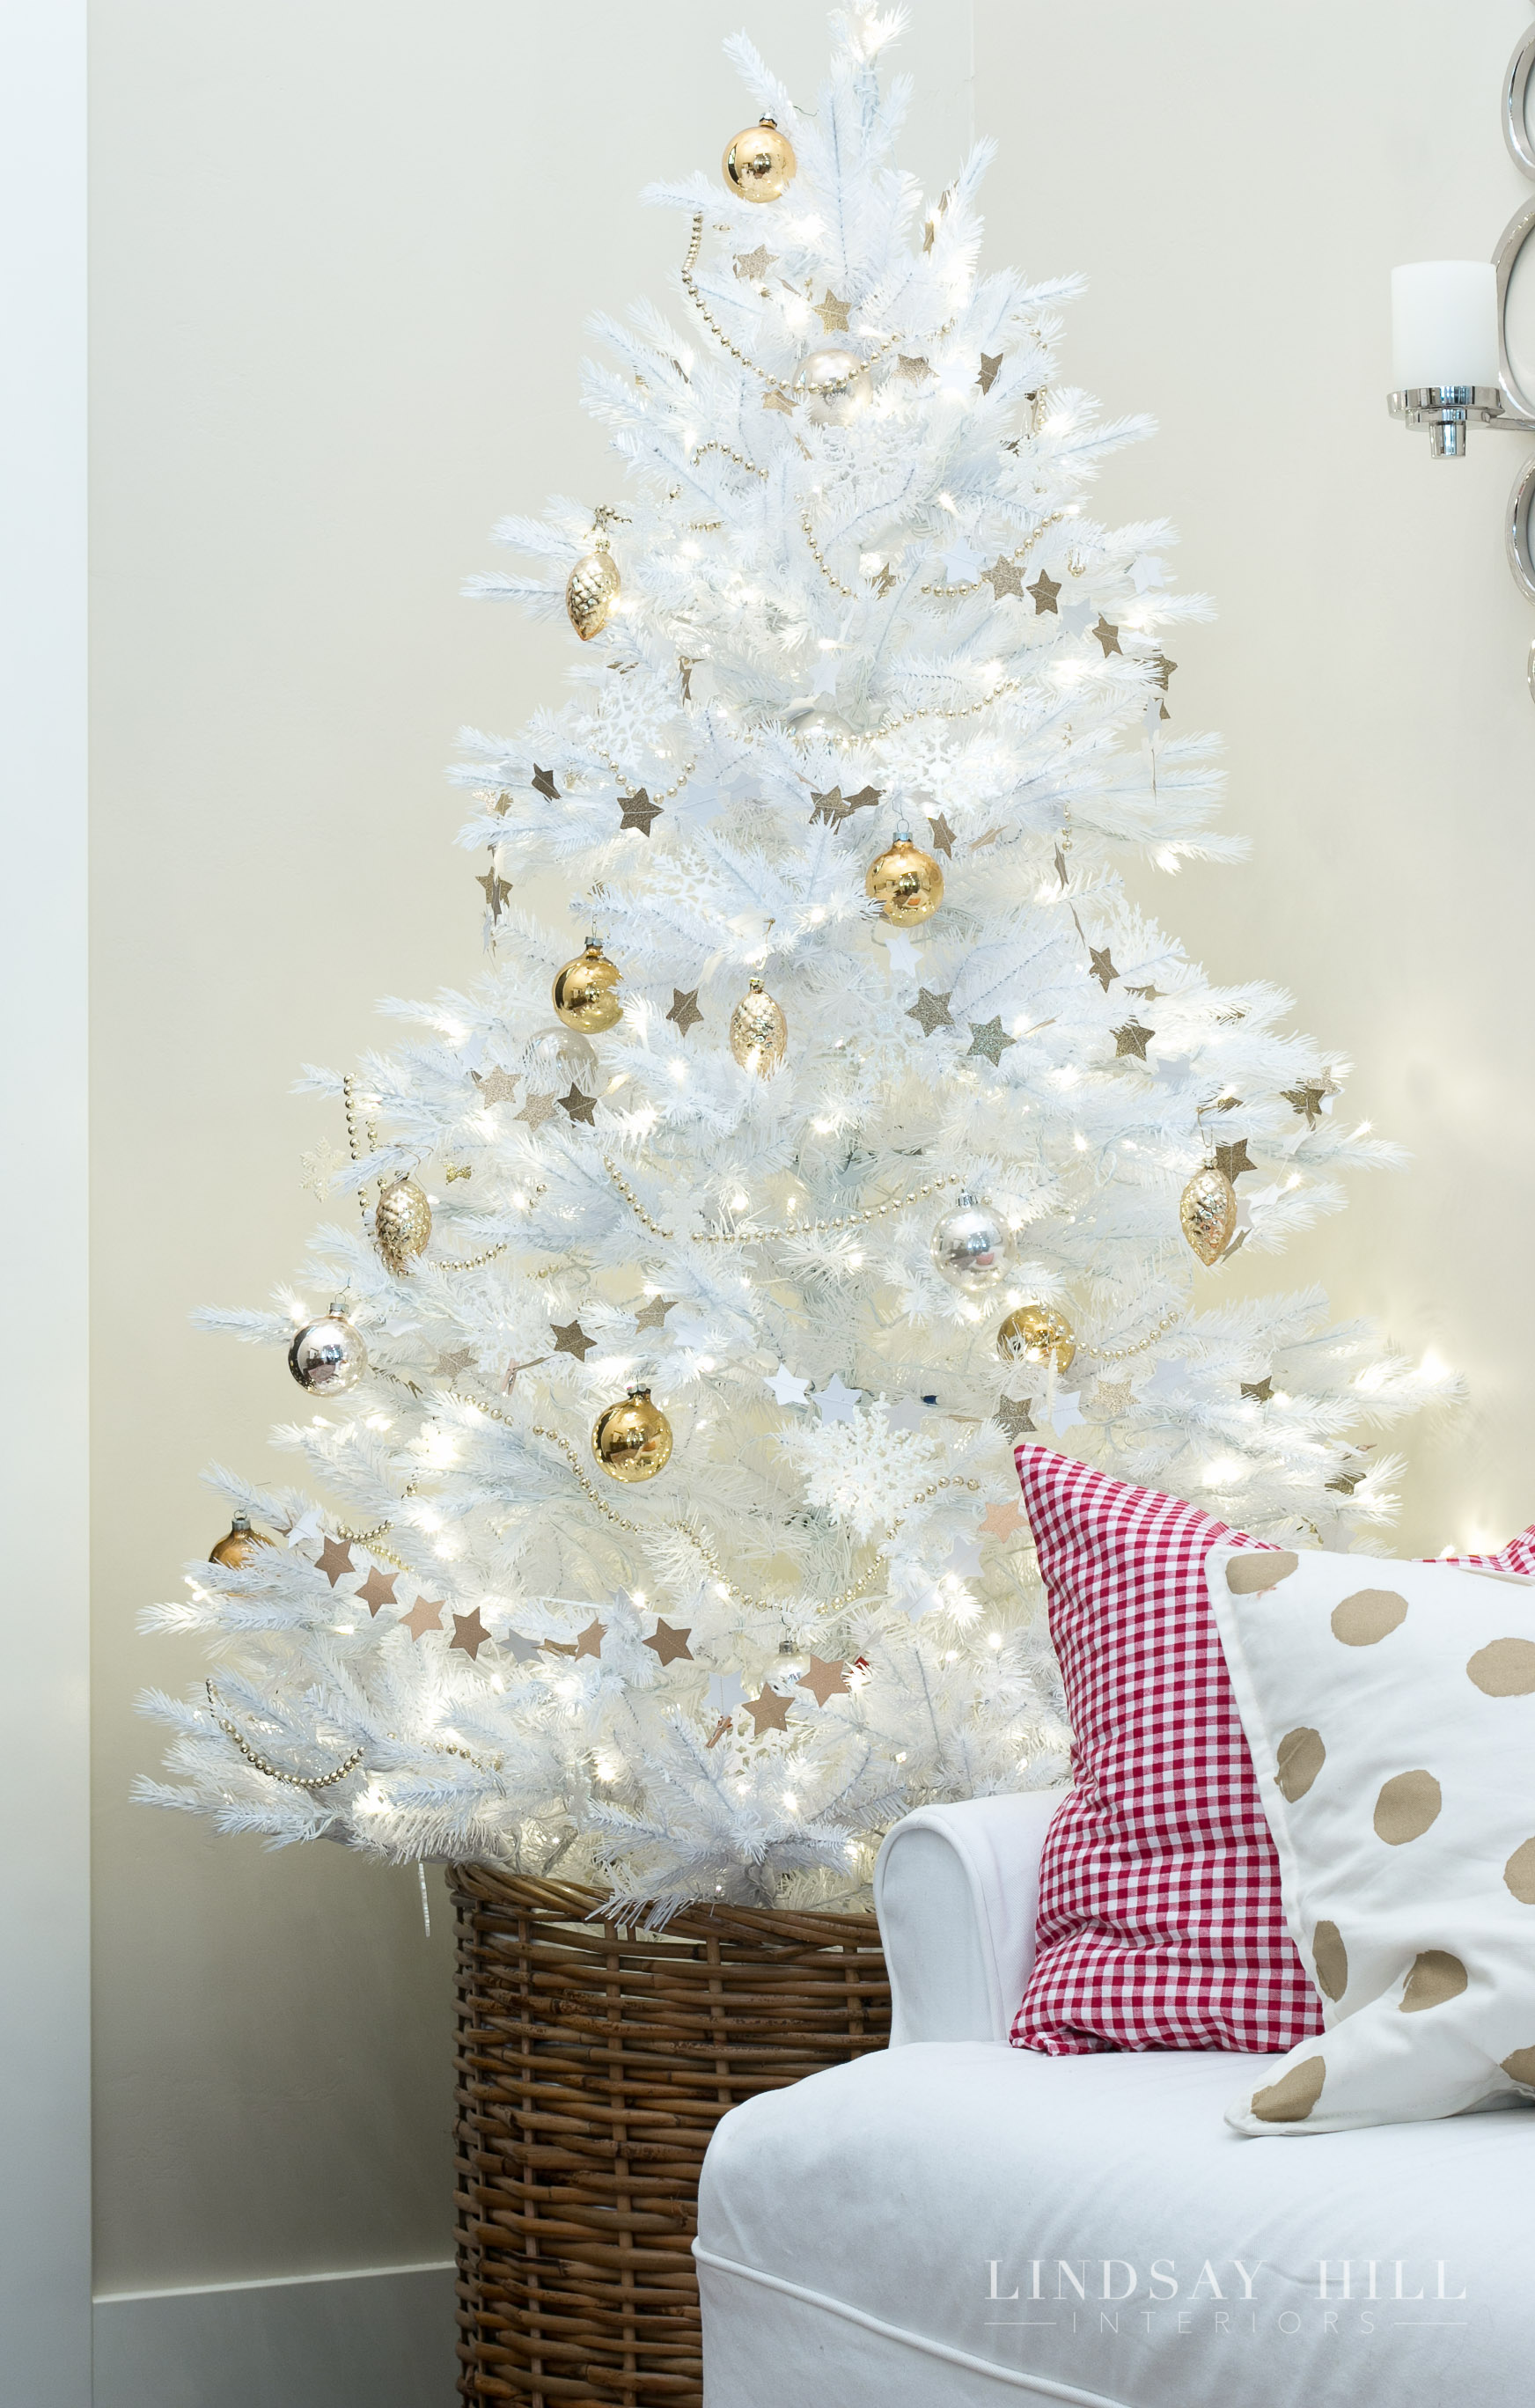 lindsay hill interiors holiday white christmas tree